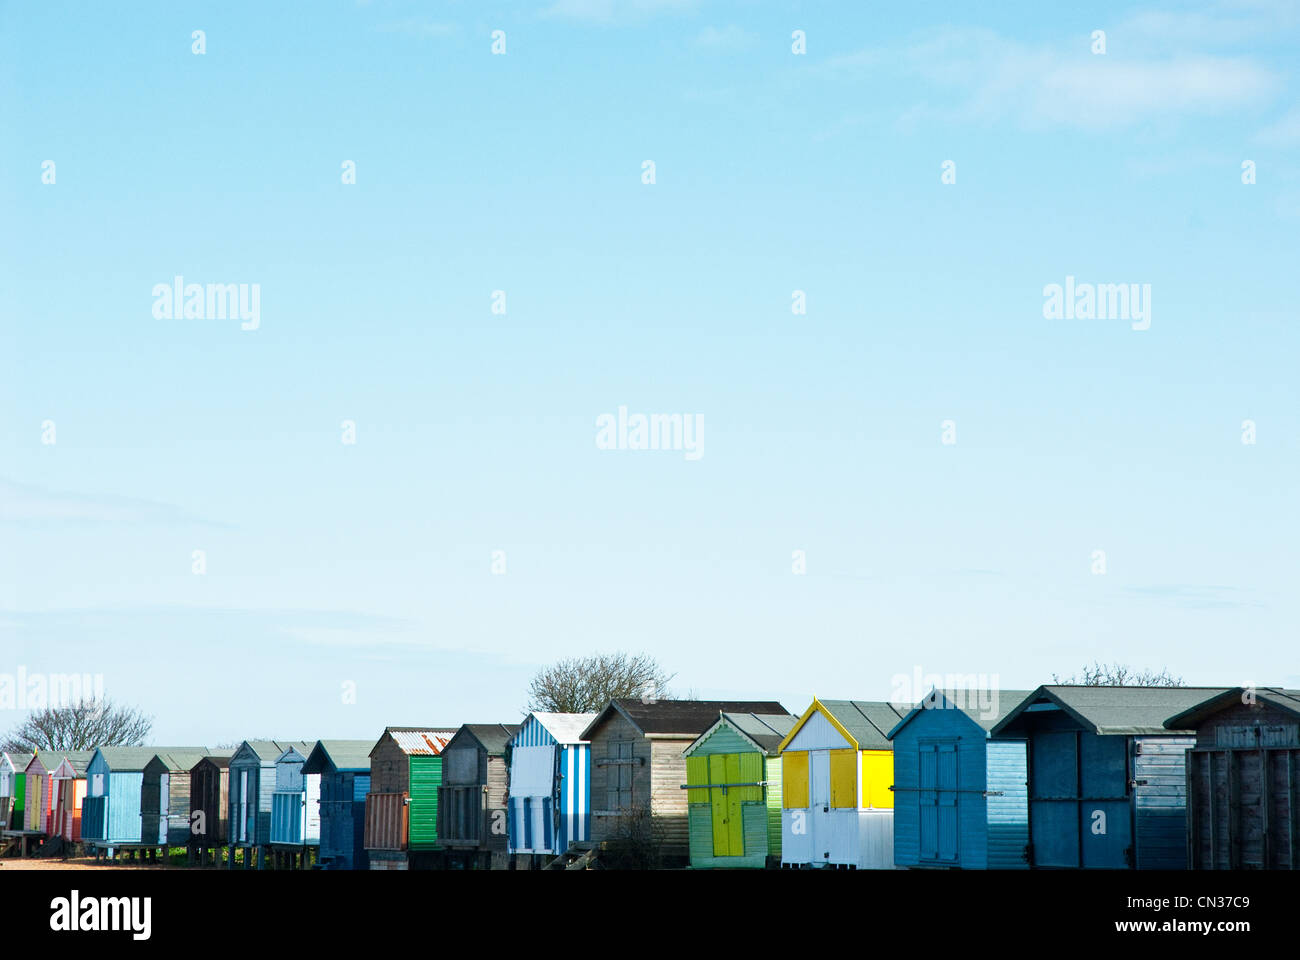 Beach huts in a row, Whitstable, Kent, England, UK Stock Photo